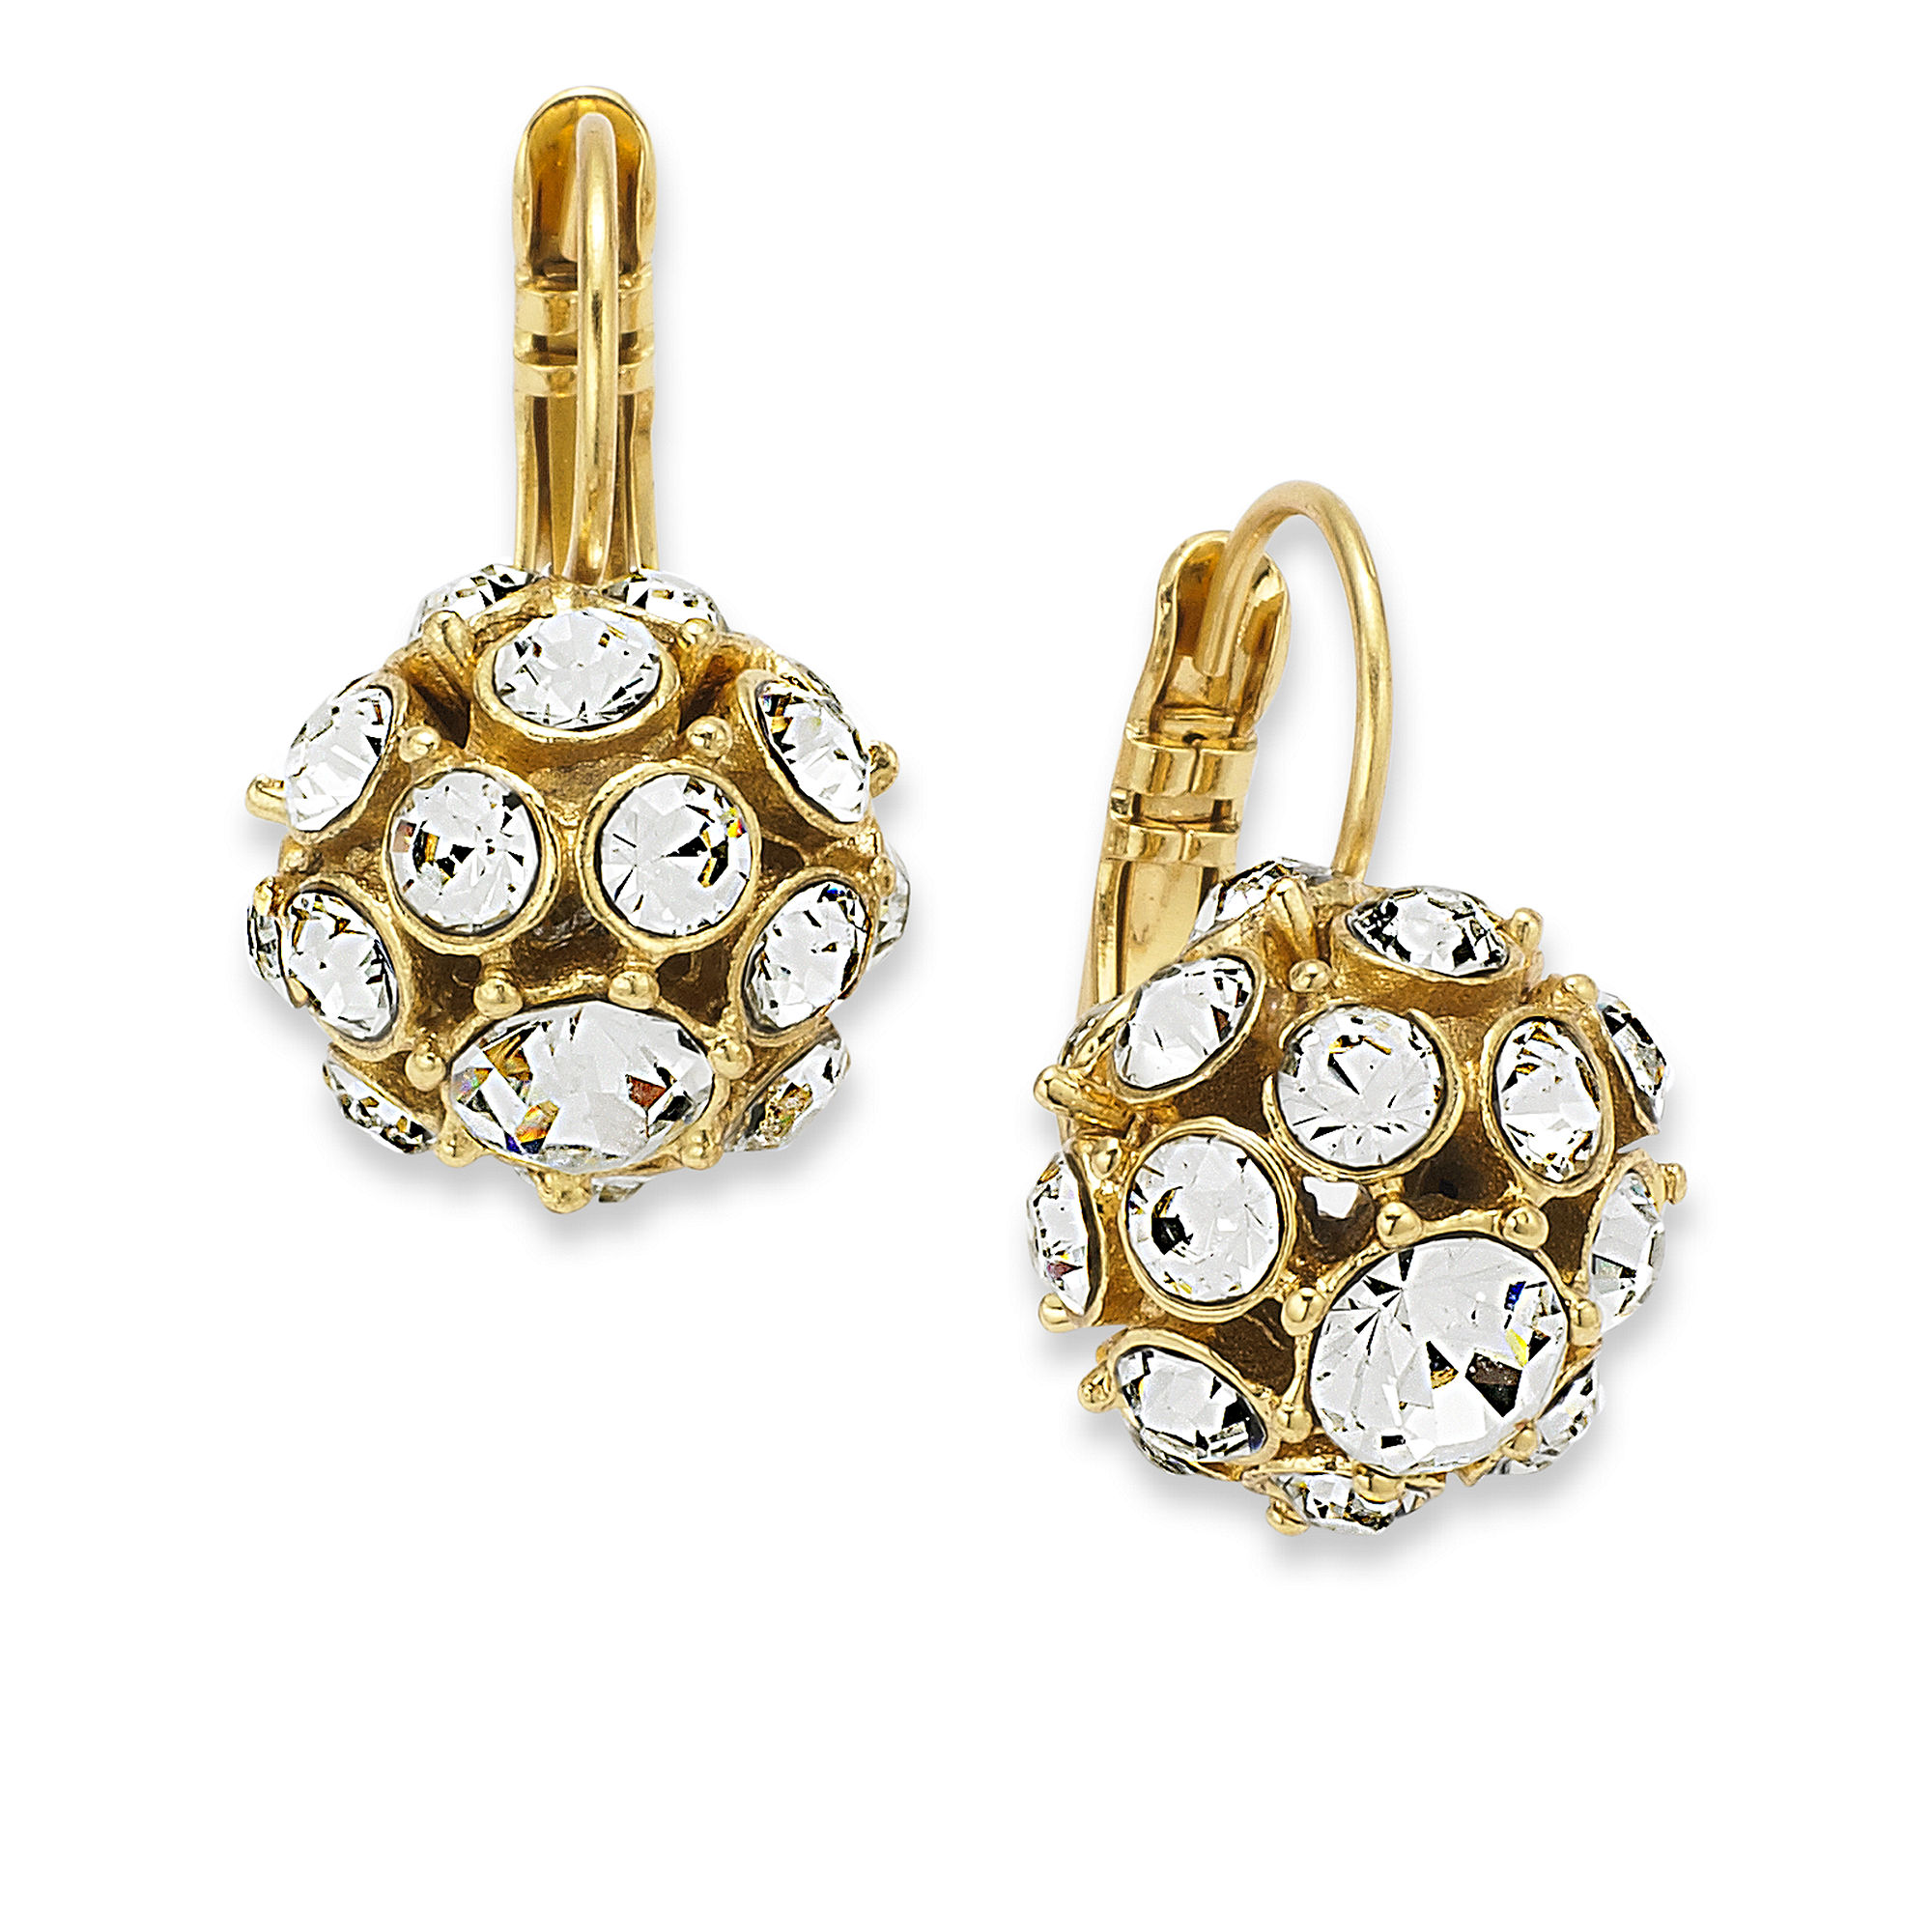 Spade Jewelry: Kate Spade 12k Gold-plated Crystal Ball Drop Earrings In